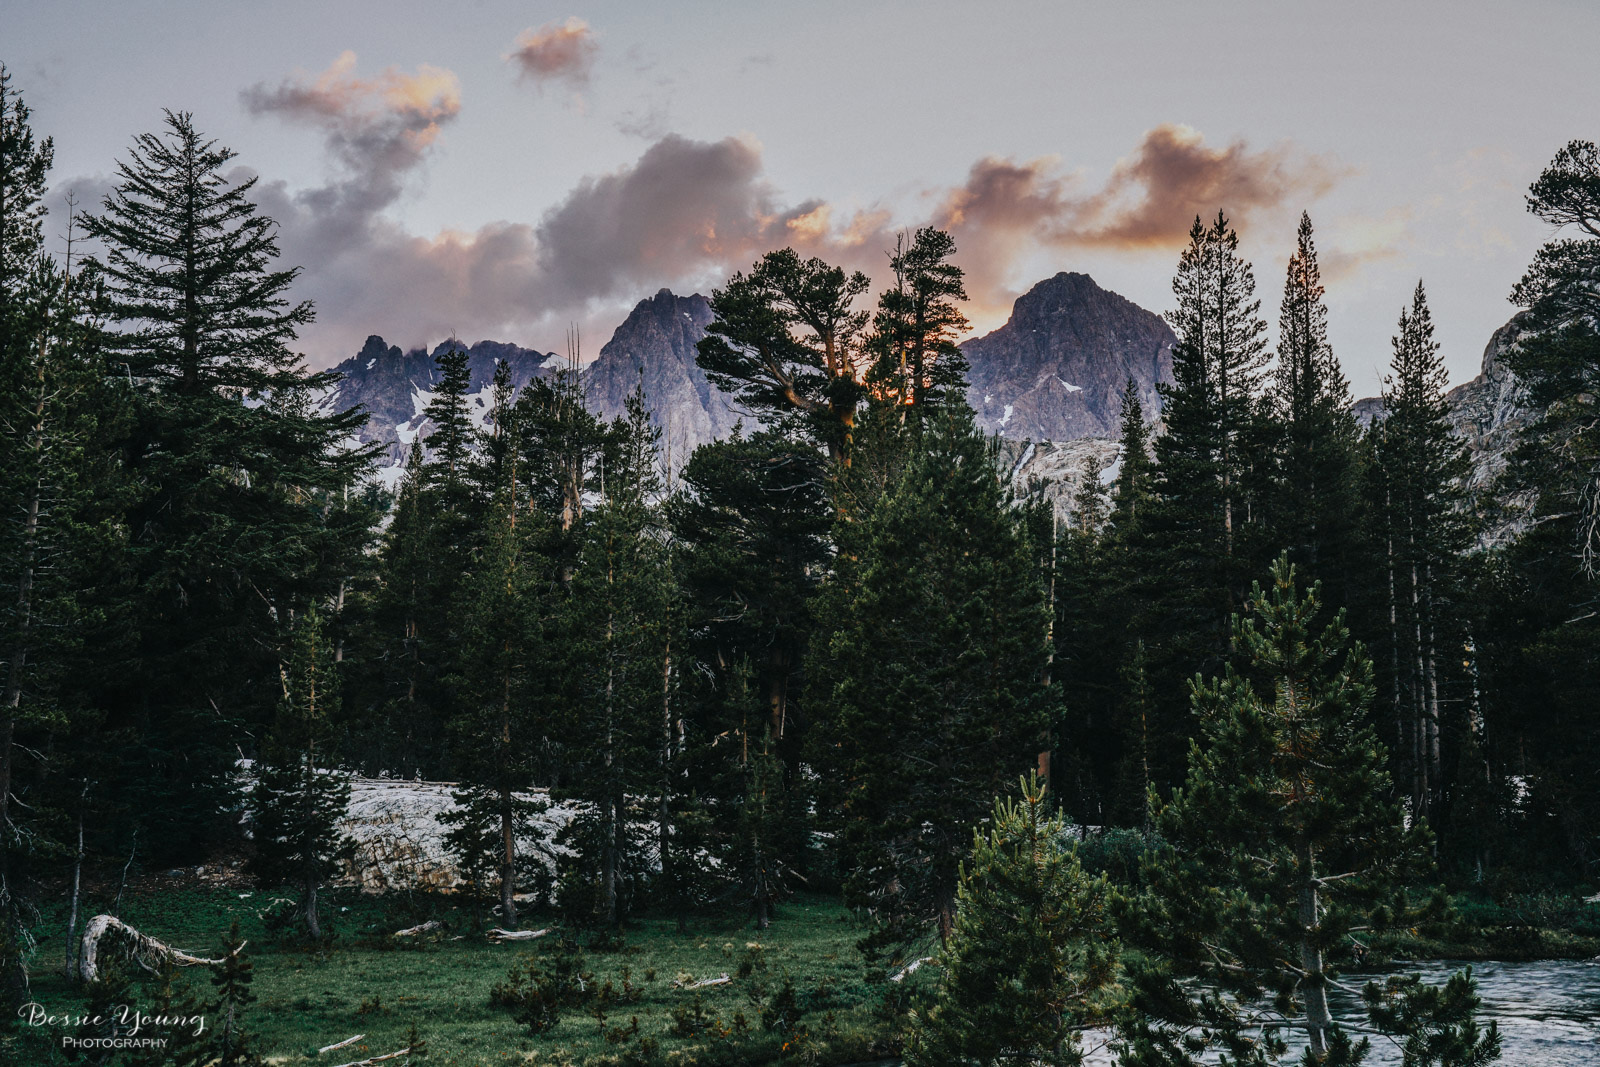 Ansel Adams Wilderness Backpacking day 1 2017 - Bessie Young Photography-33.jpg